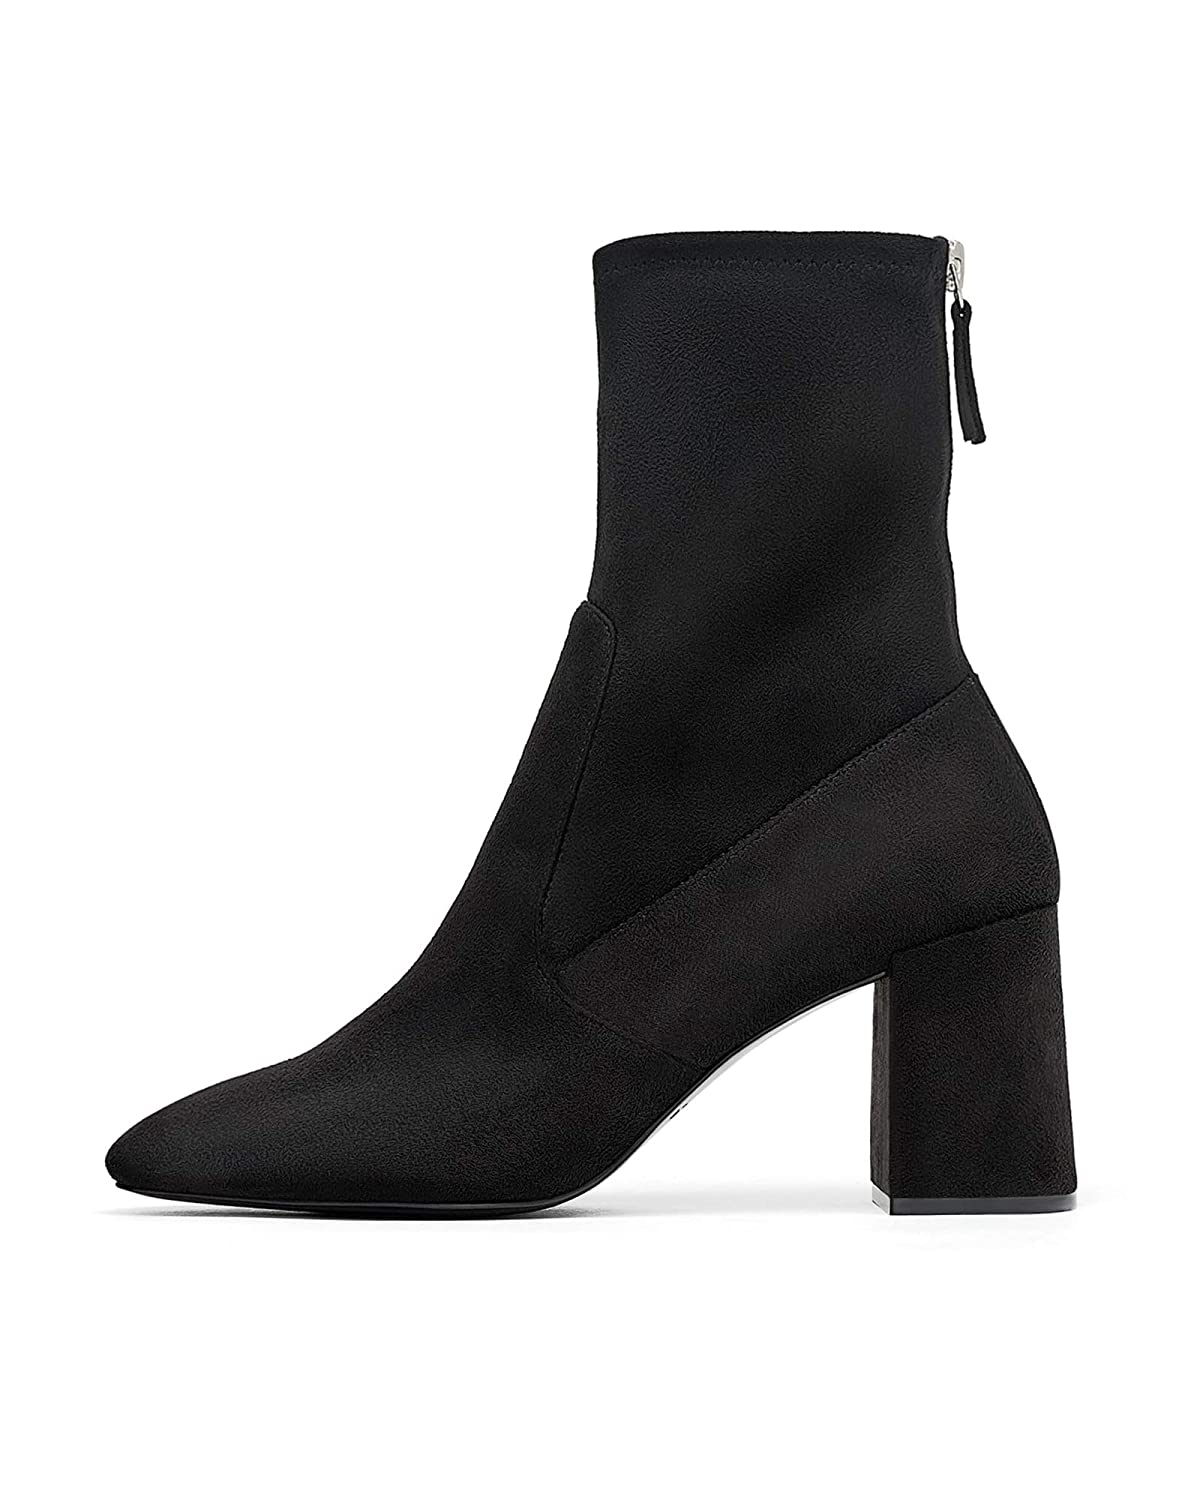 c1d5e2e4011 Zara Women's High-Heel Ankle Boots with Zip 6146/301: Amazon.co.uk ...